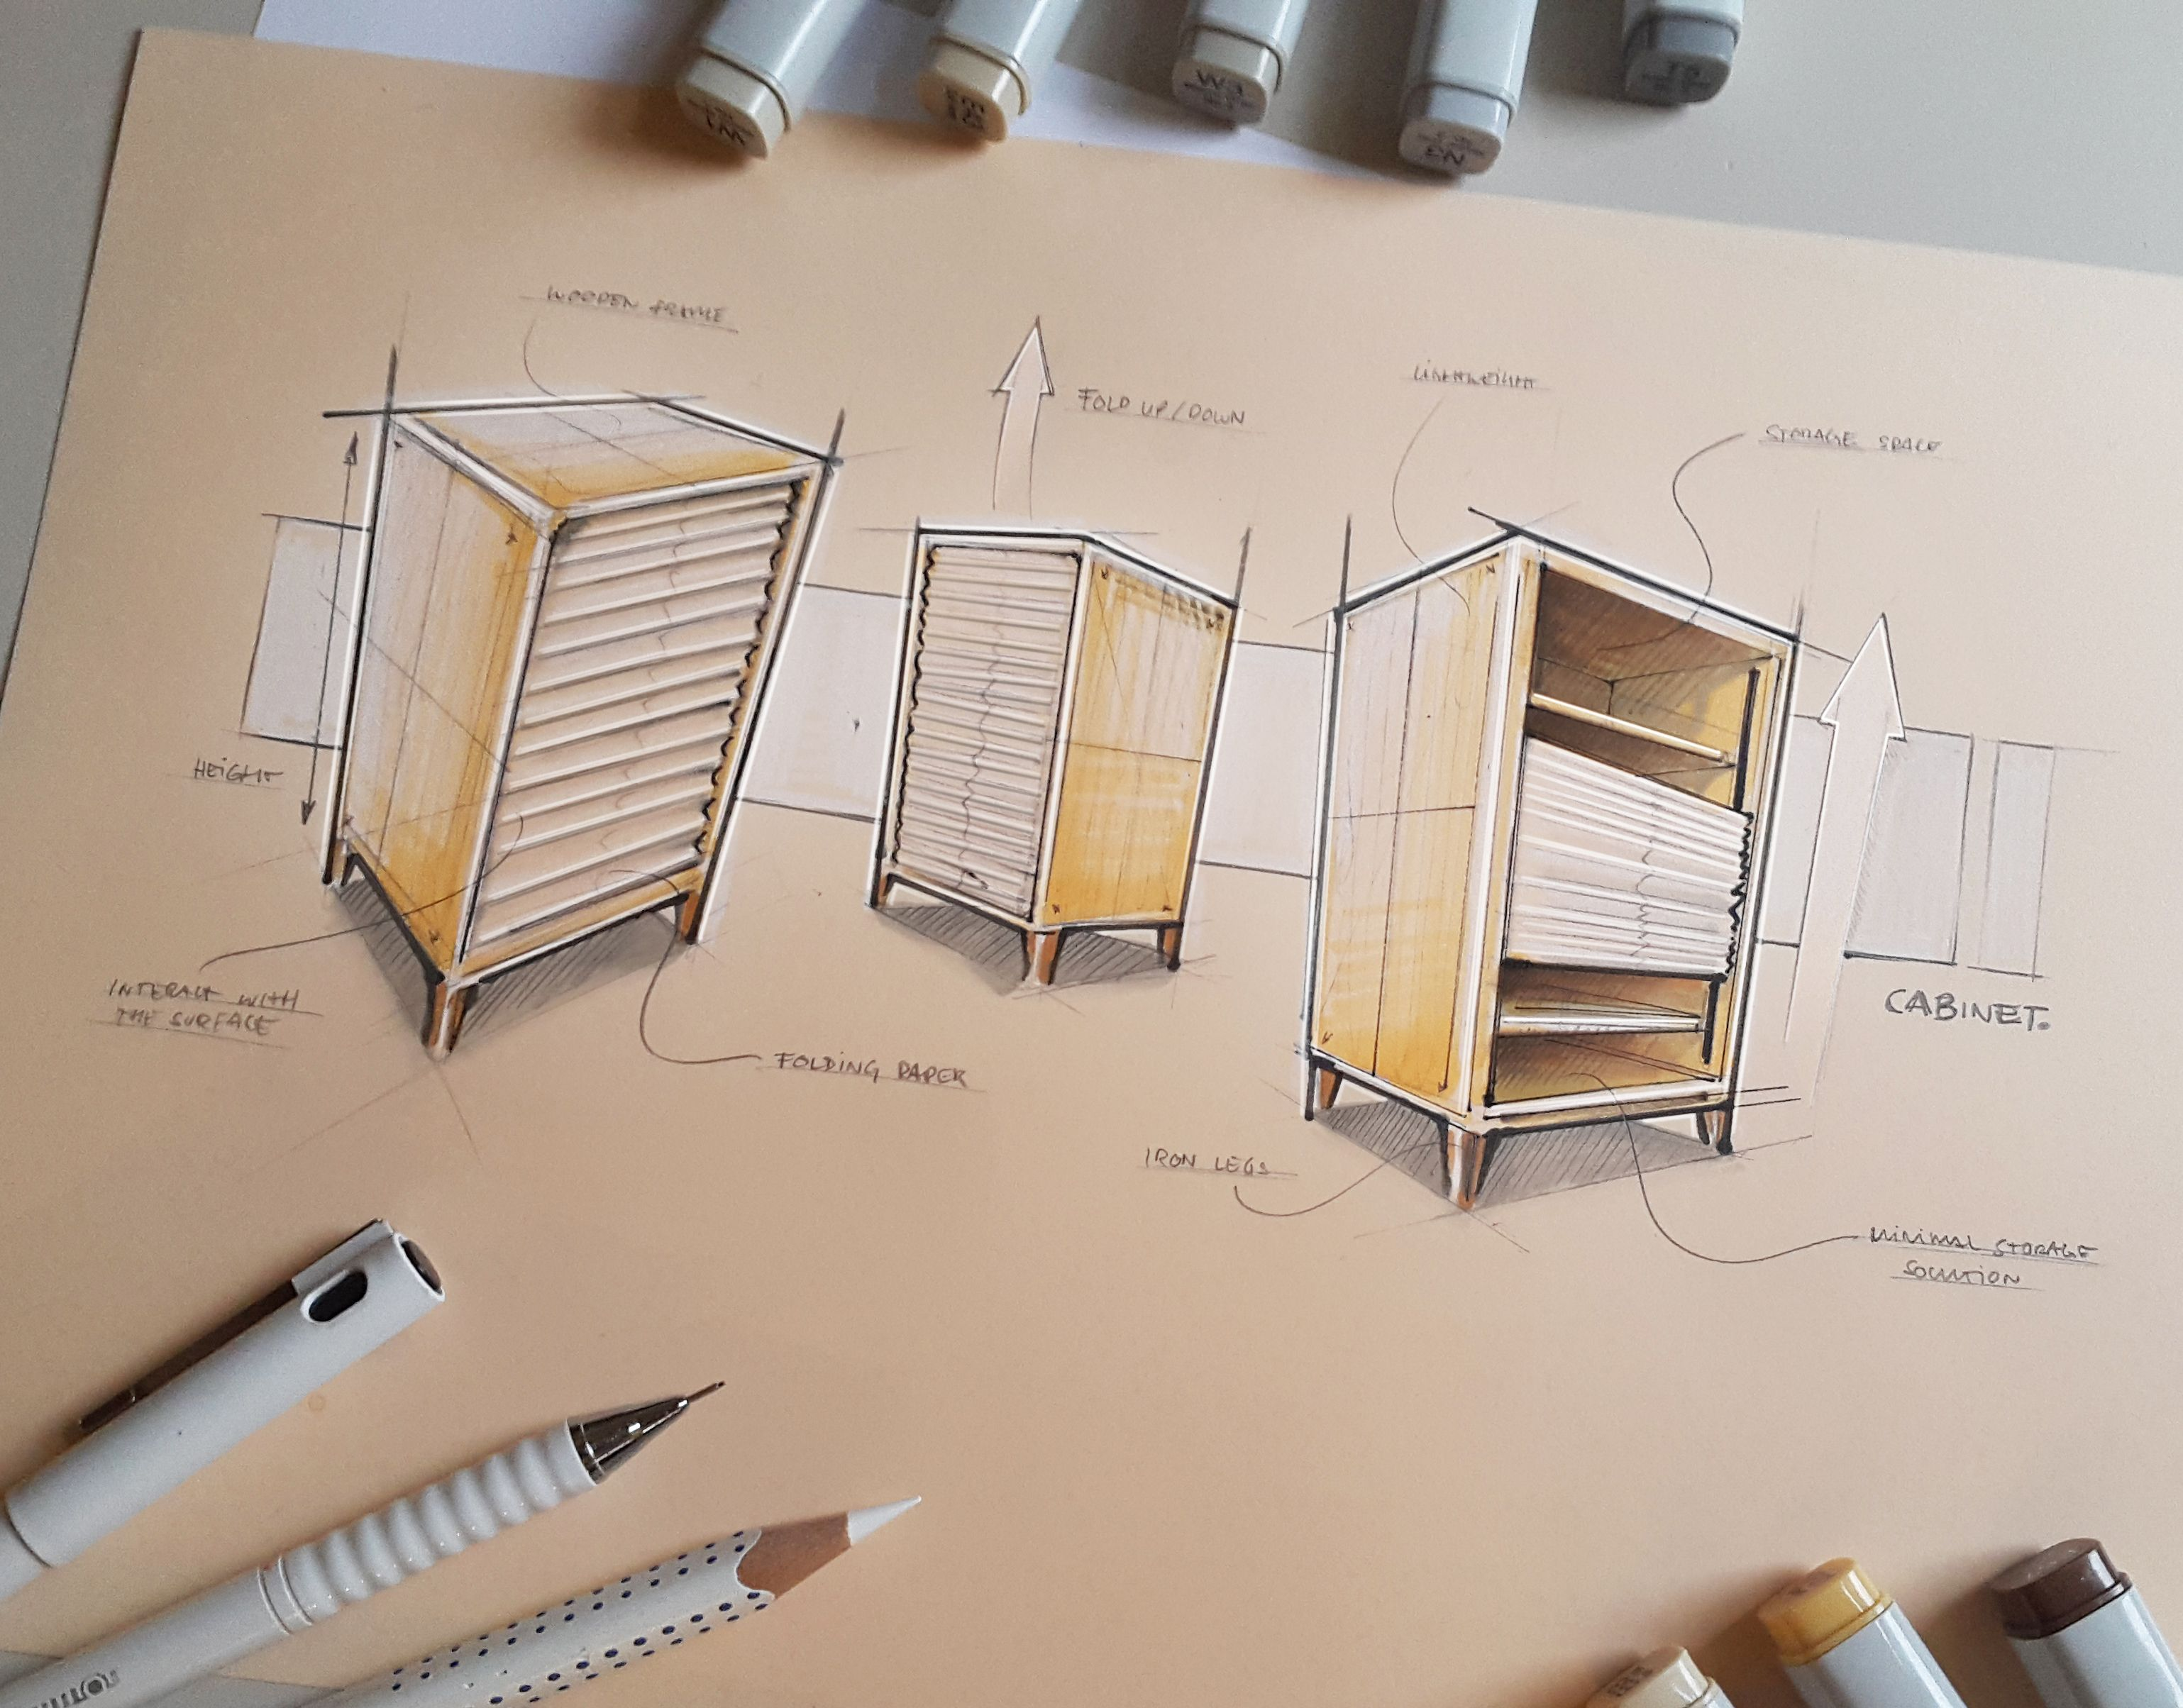 Related Image Furniture Design Sketches Interior Sketch